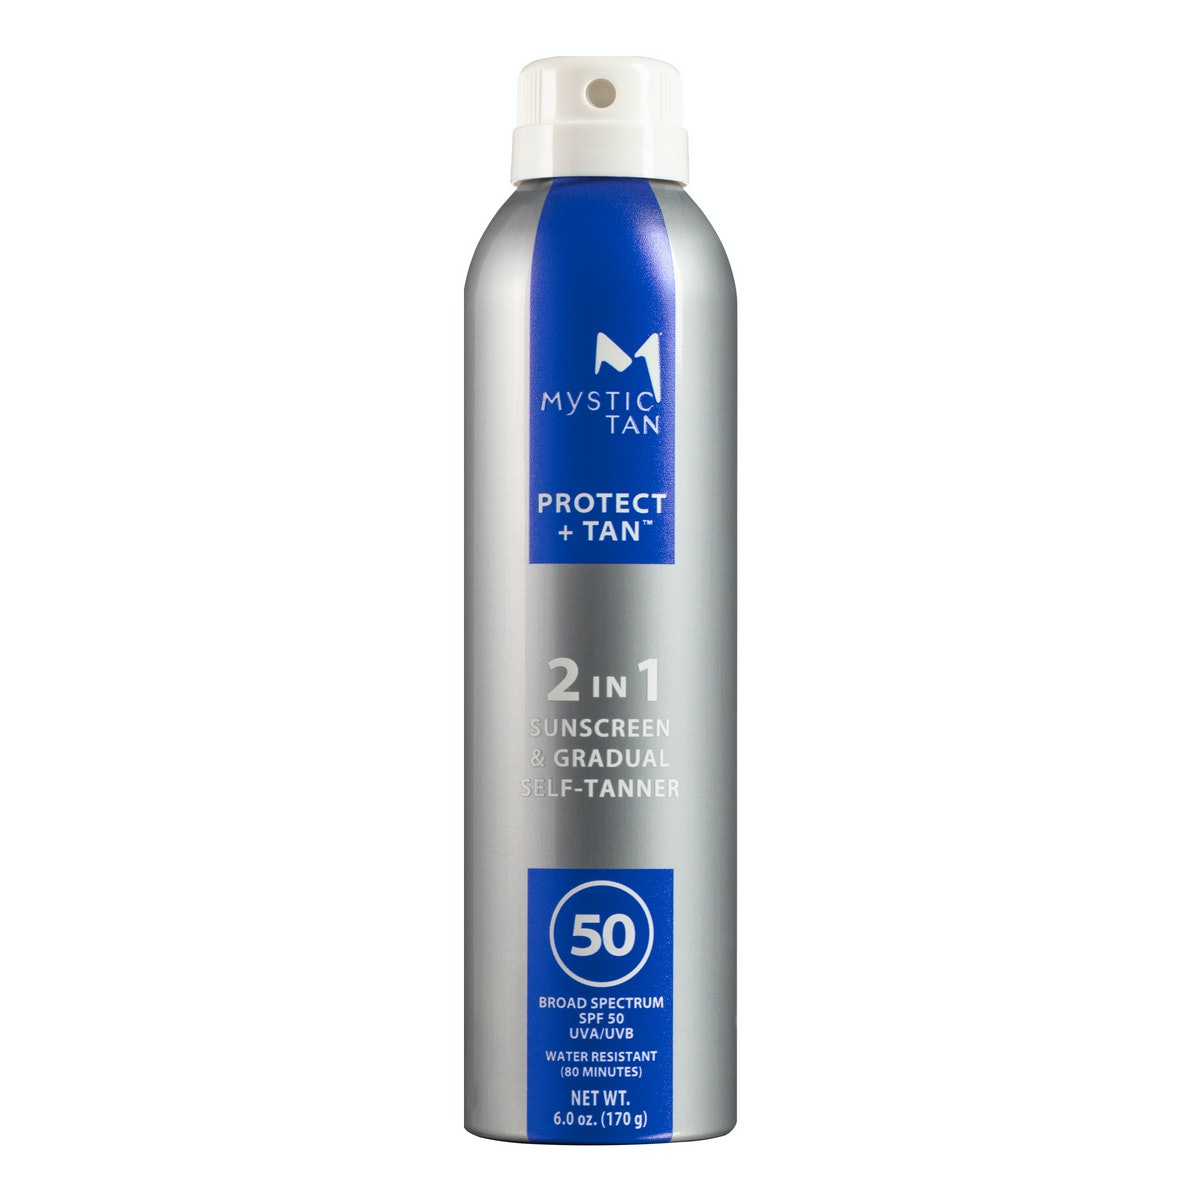 Protect + Tan 2 in 1 Sunscreen SPF 50 infused with Gradual Self-Tanner Spray